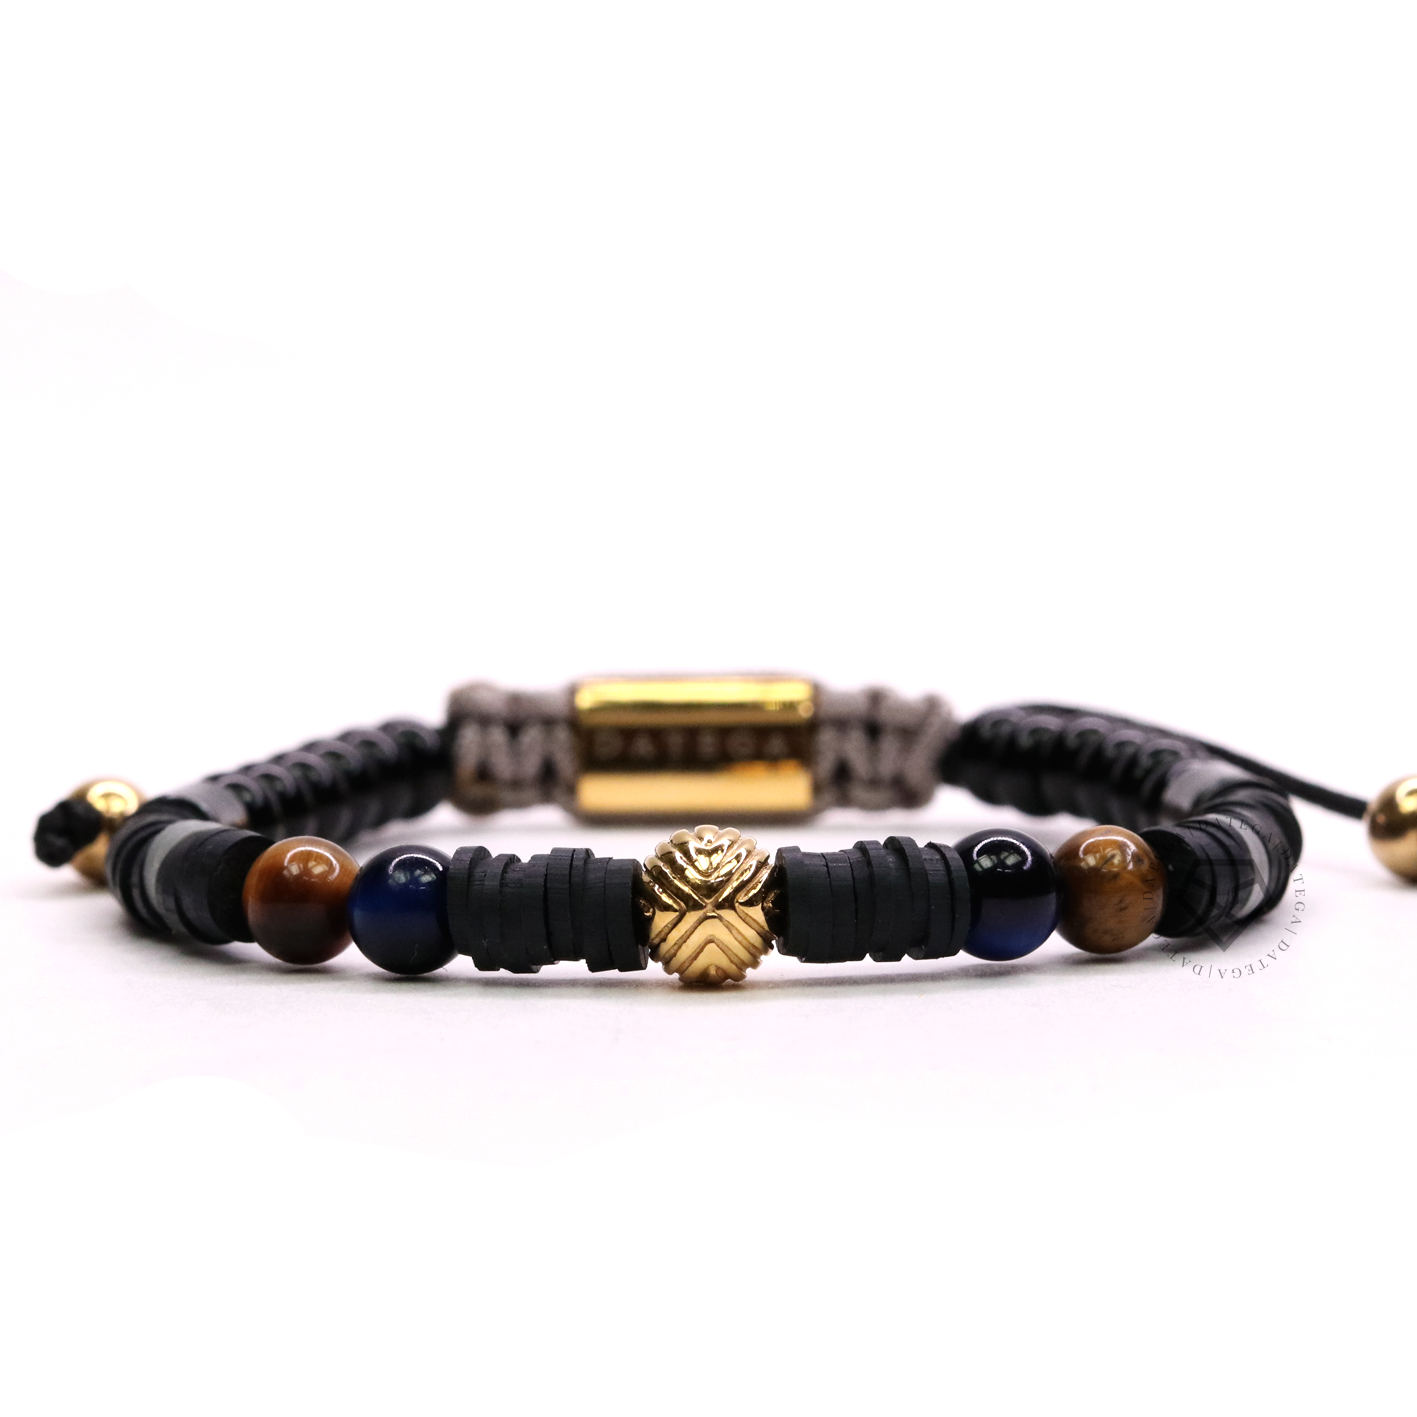 EXXE Sphere Yellow Gold, Black Harbor & Onyx Rotam